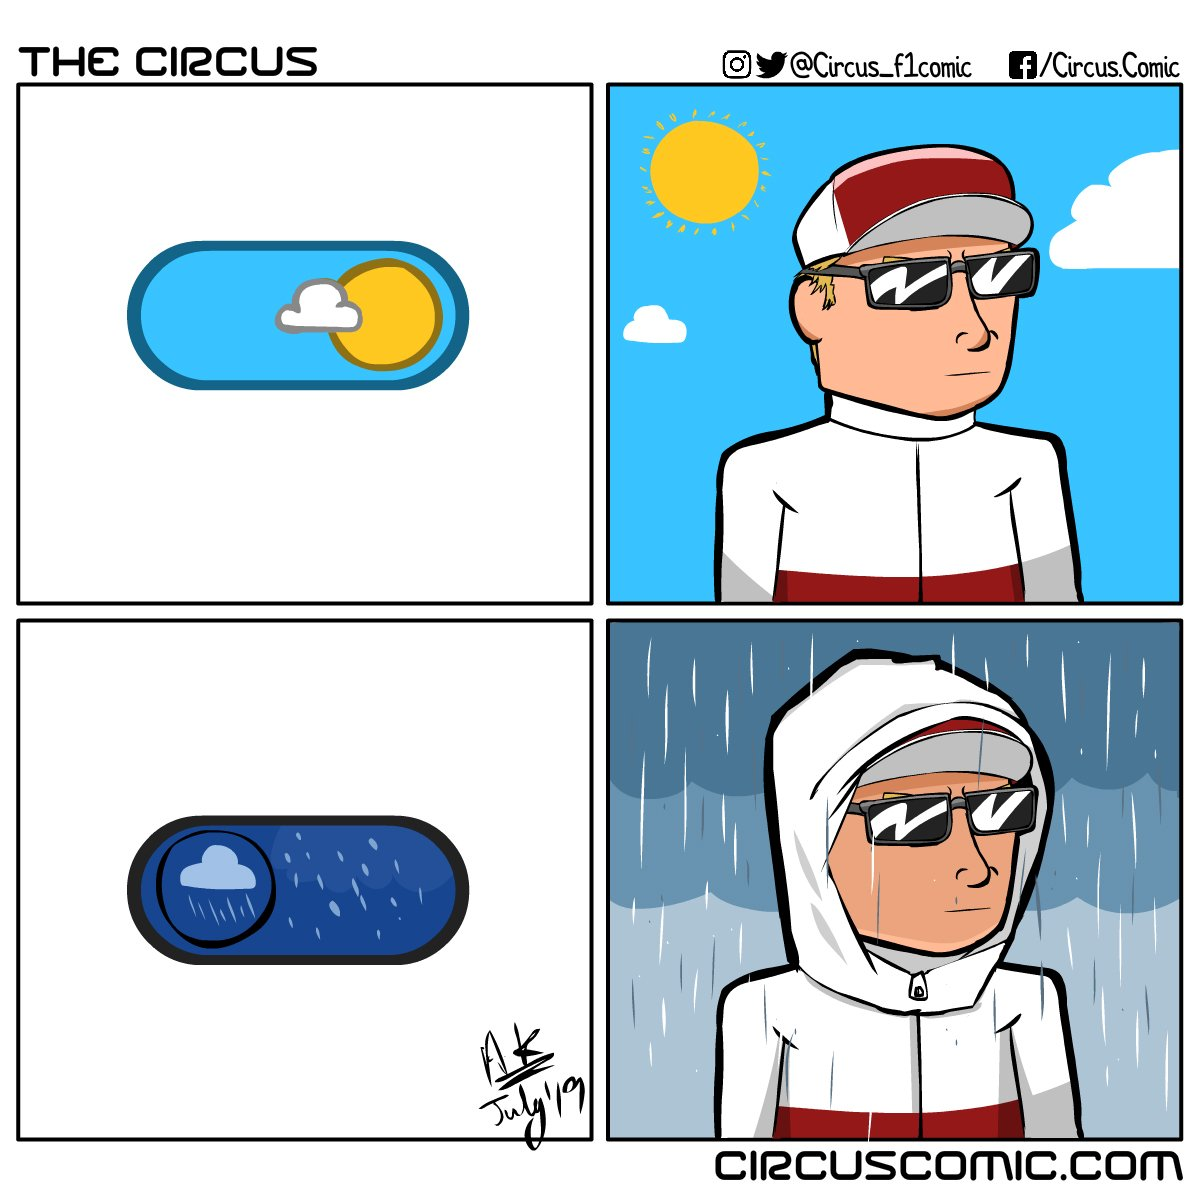 Day Mode. Rain Mode. The Iceman Mode never ends. @alfaromeoracing #KimiRaikkonen #F1 #germanGP